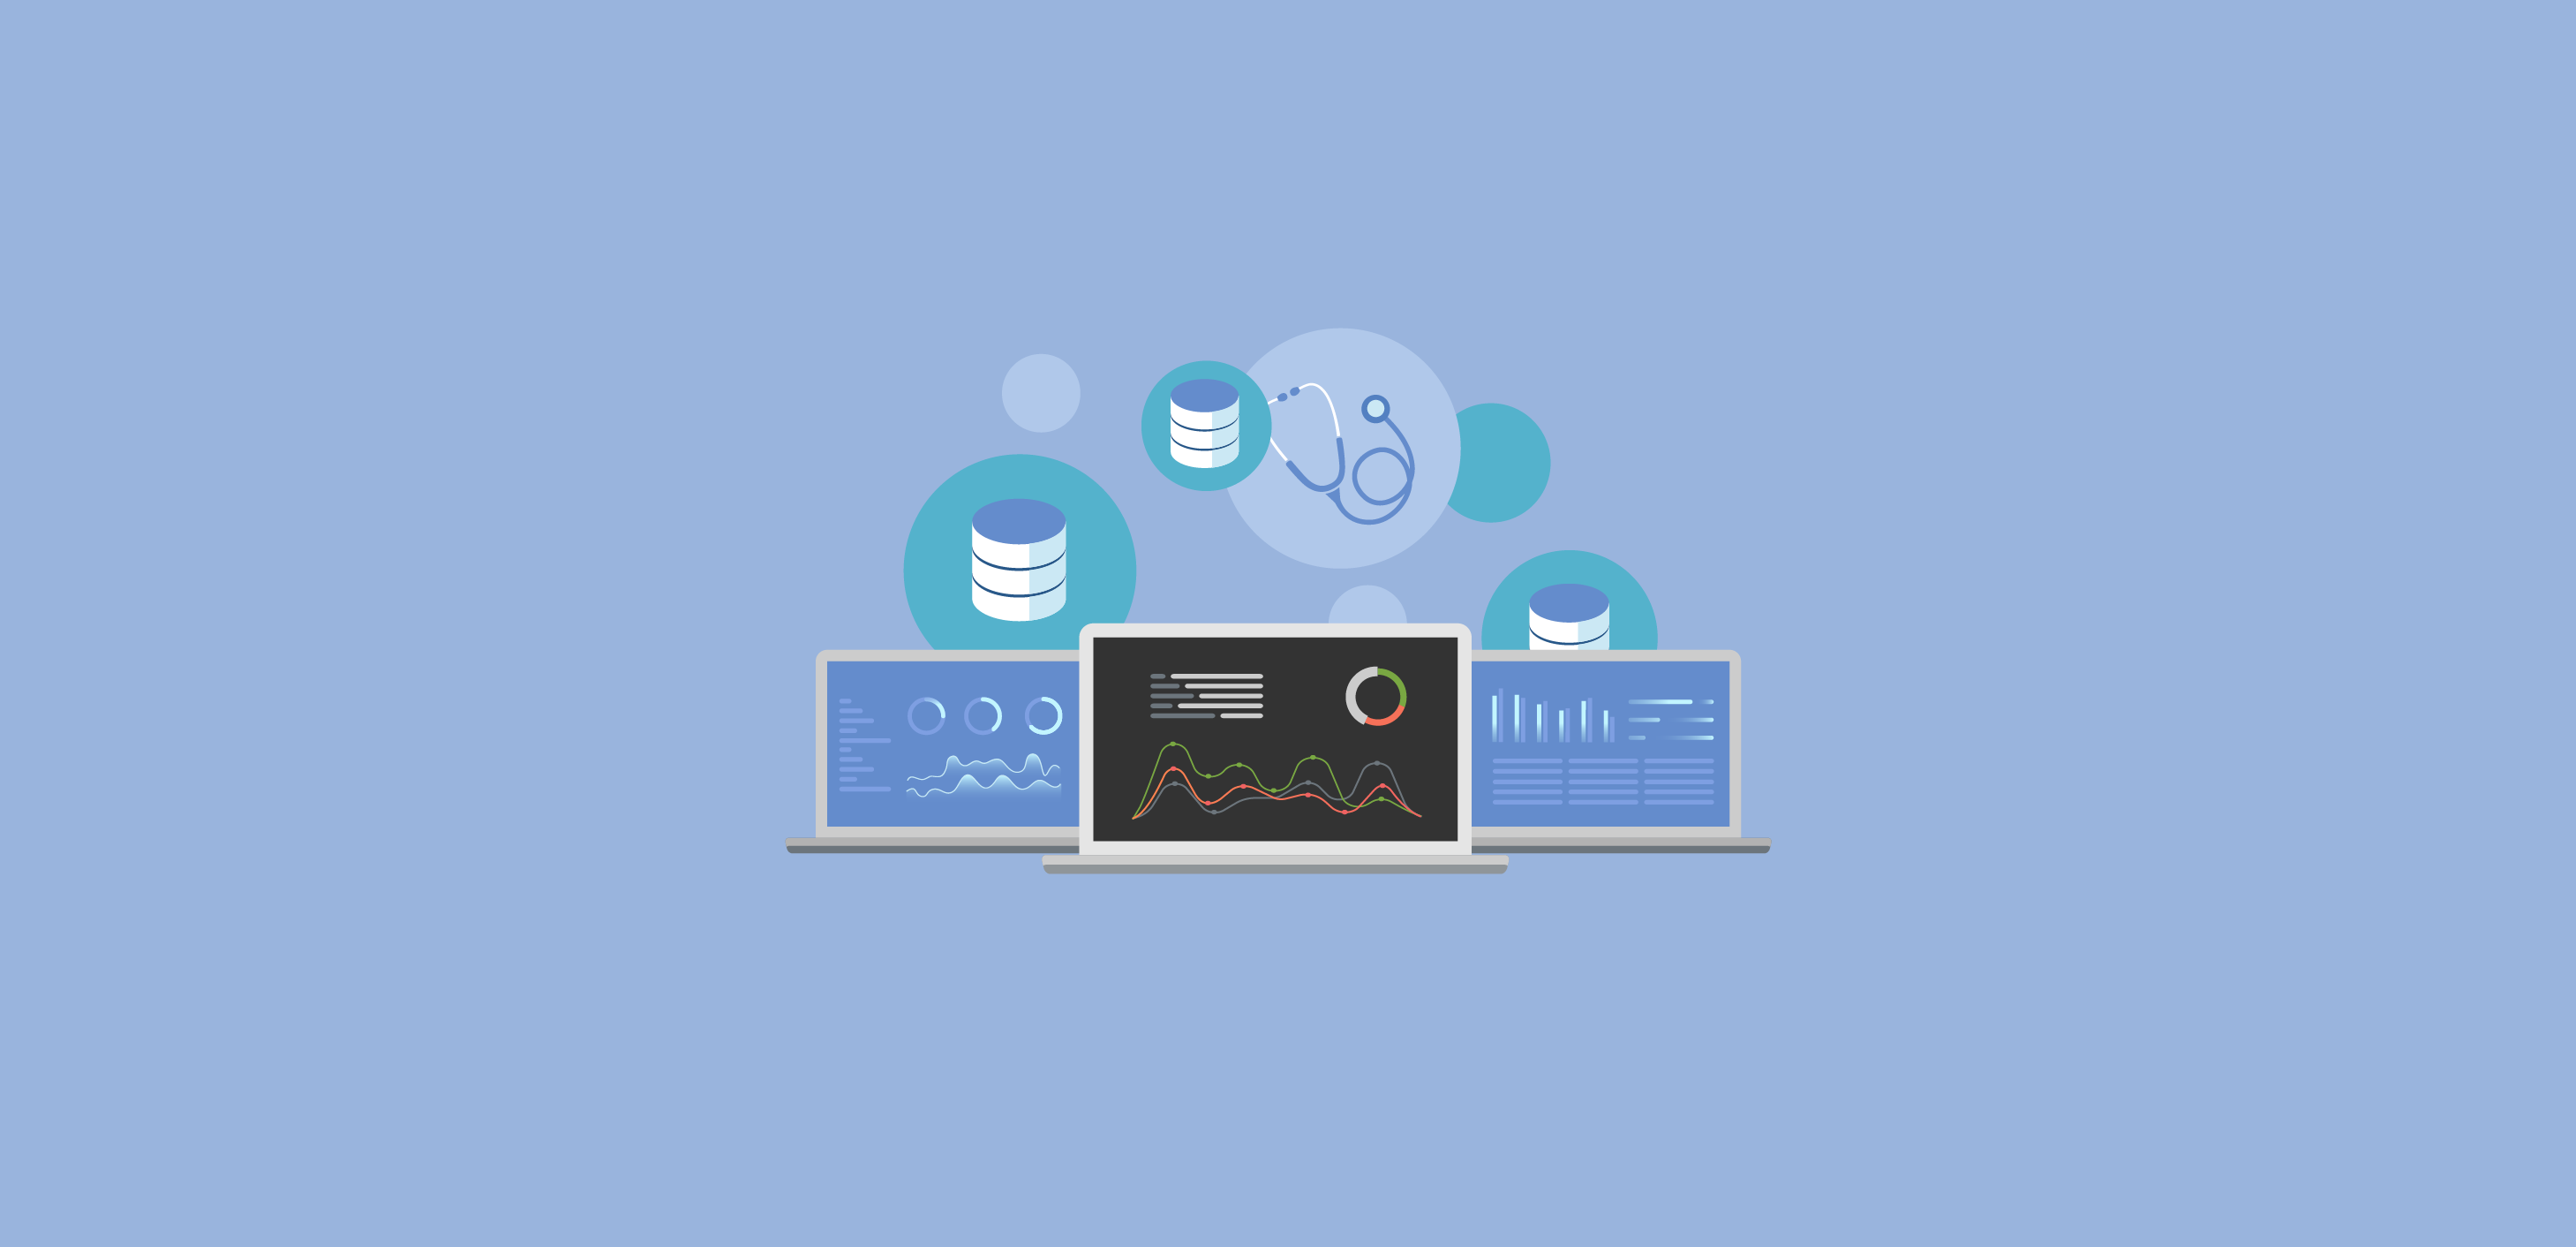 Are You Using the Right Database Performance Monitoring Tools?